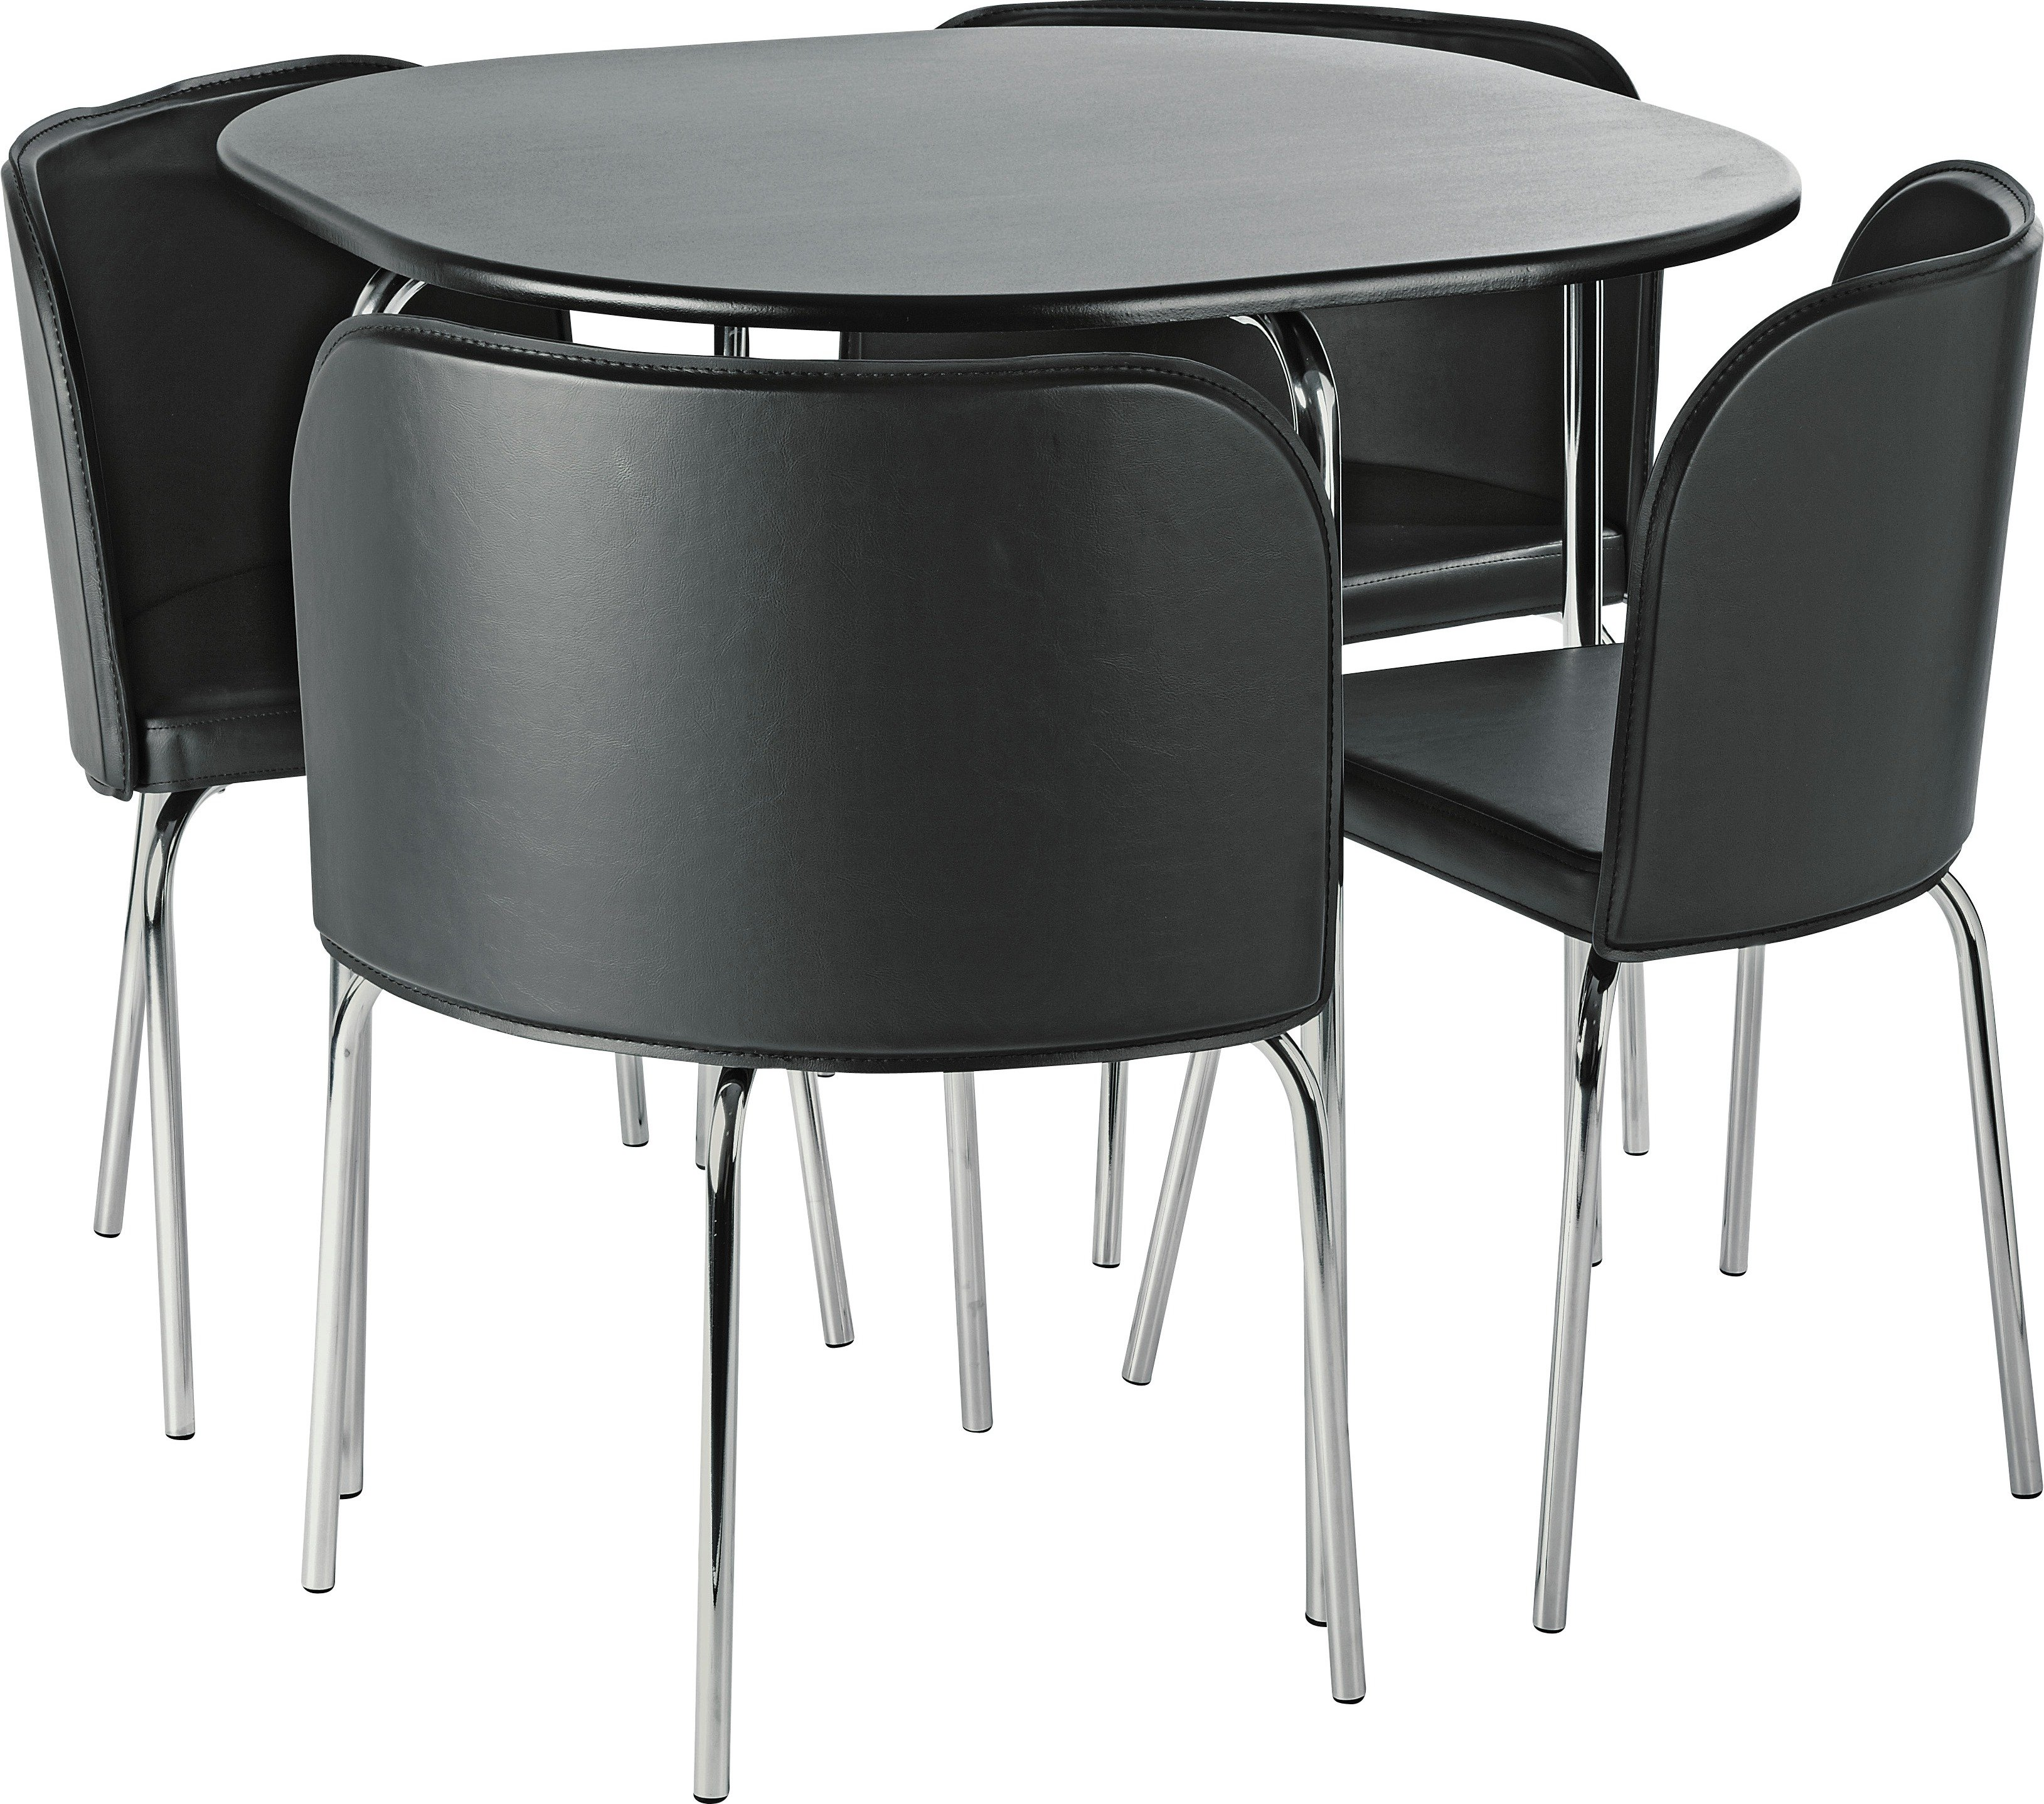 hideaway table and chairs argos antique dining chair hygena amparo 4 black 99